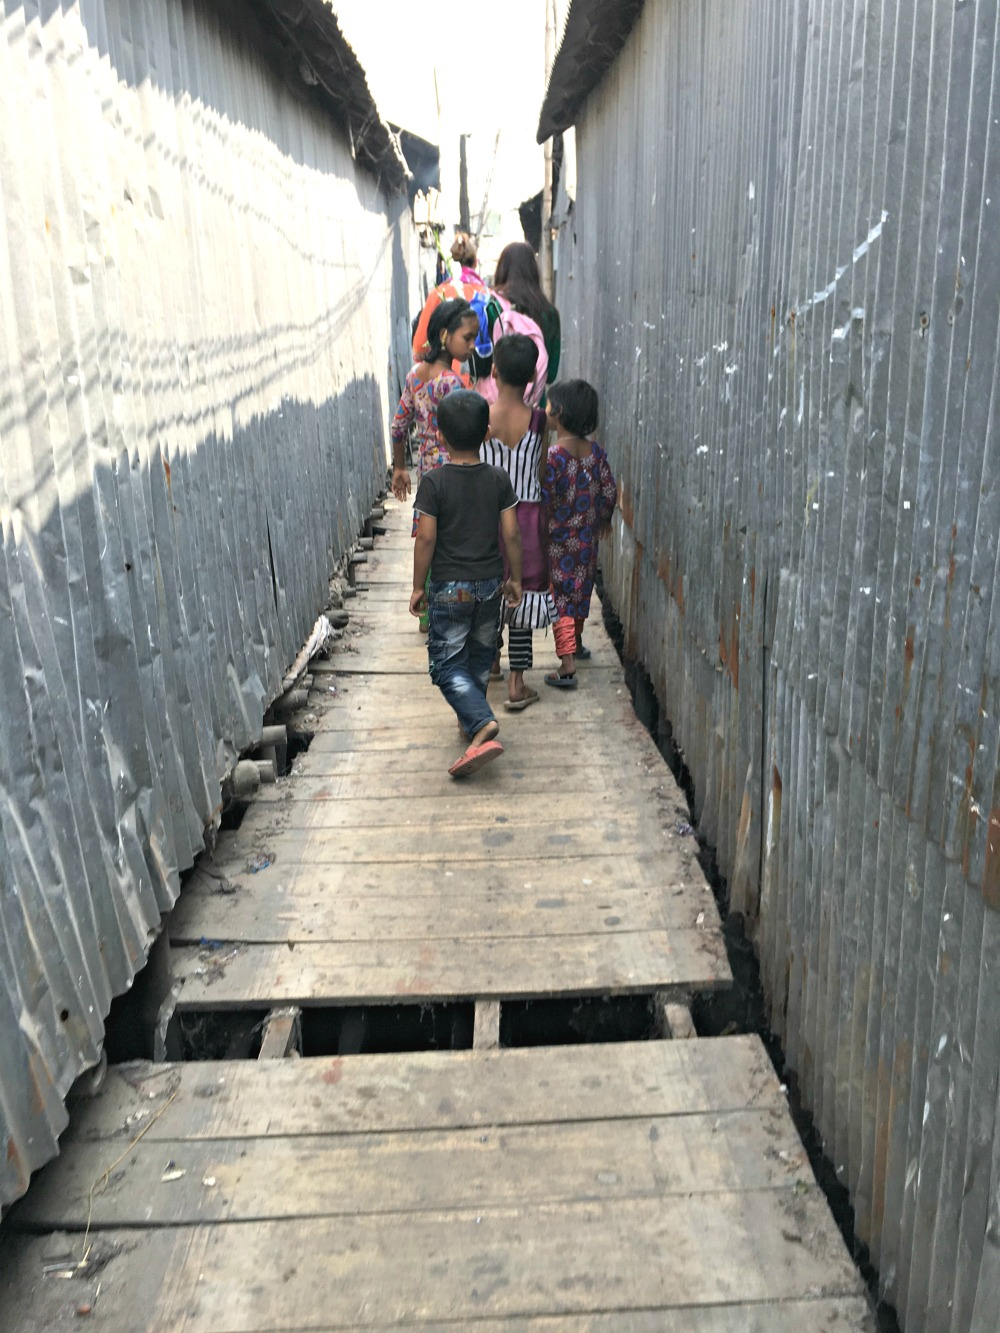 bangladesh slum cracks in dock